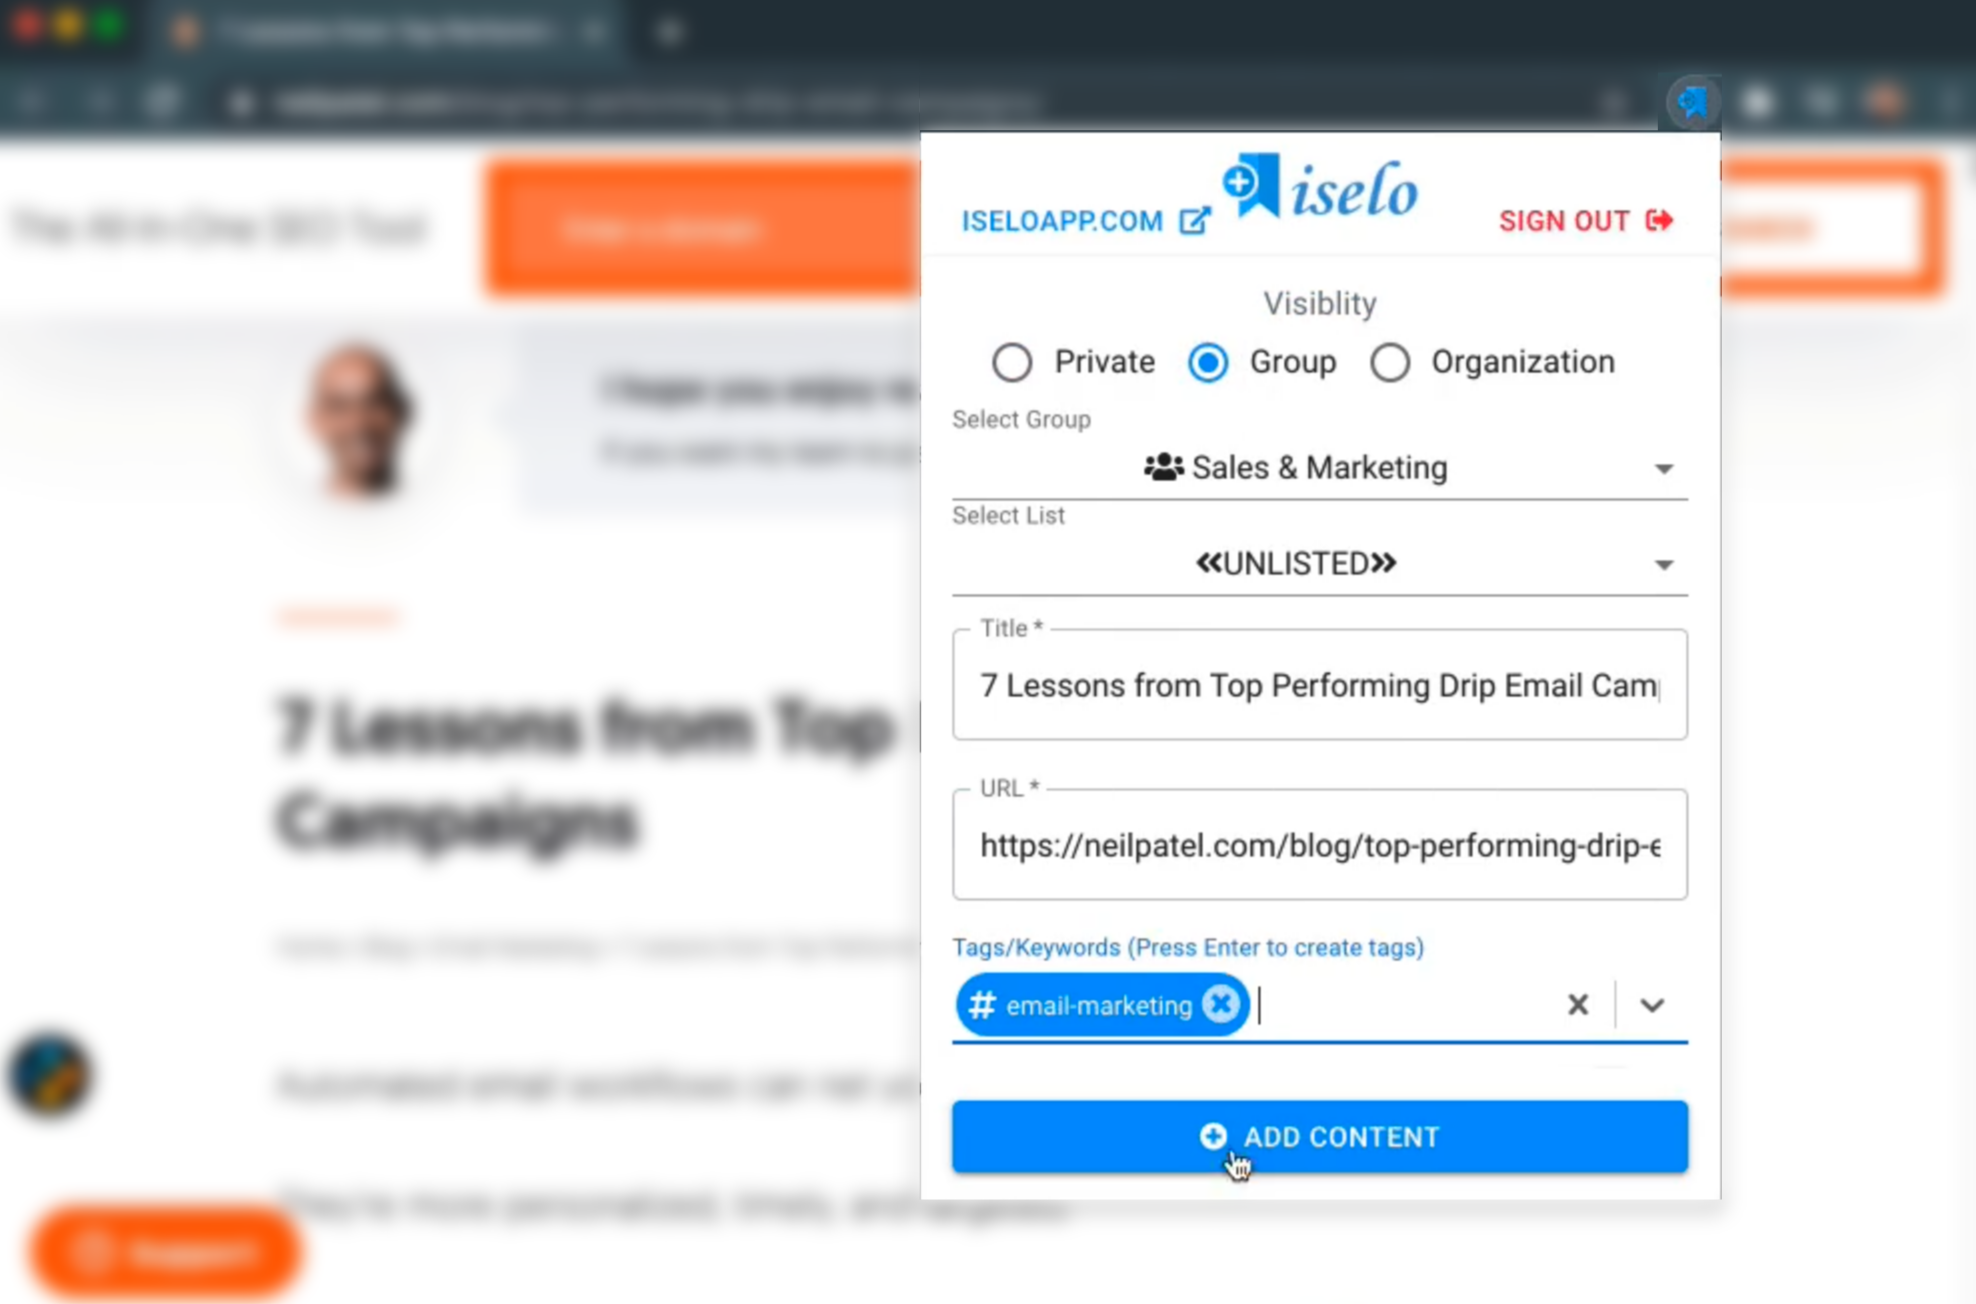 Browser Extension to Save Content to ISELO directly from the browsers without opening ISELO Webapp. Available for Chrome, Firefox and Microsoft Edge